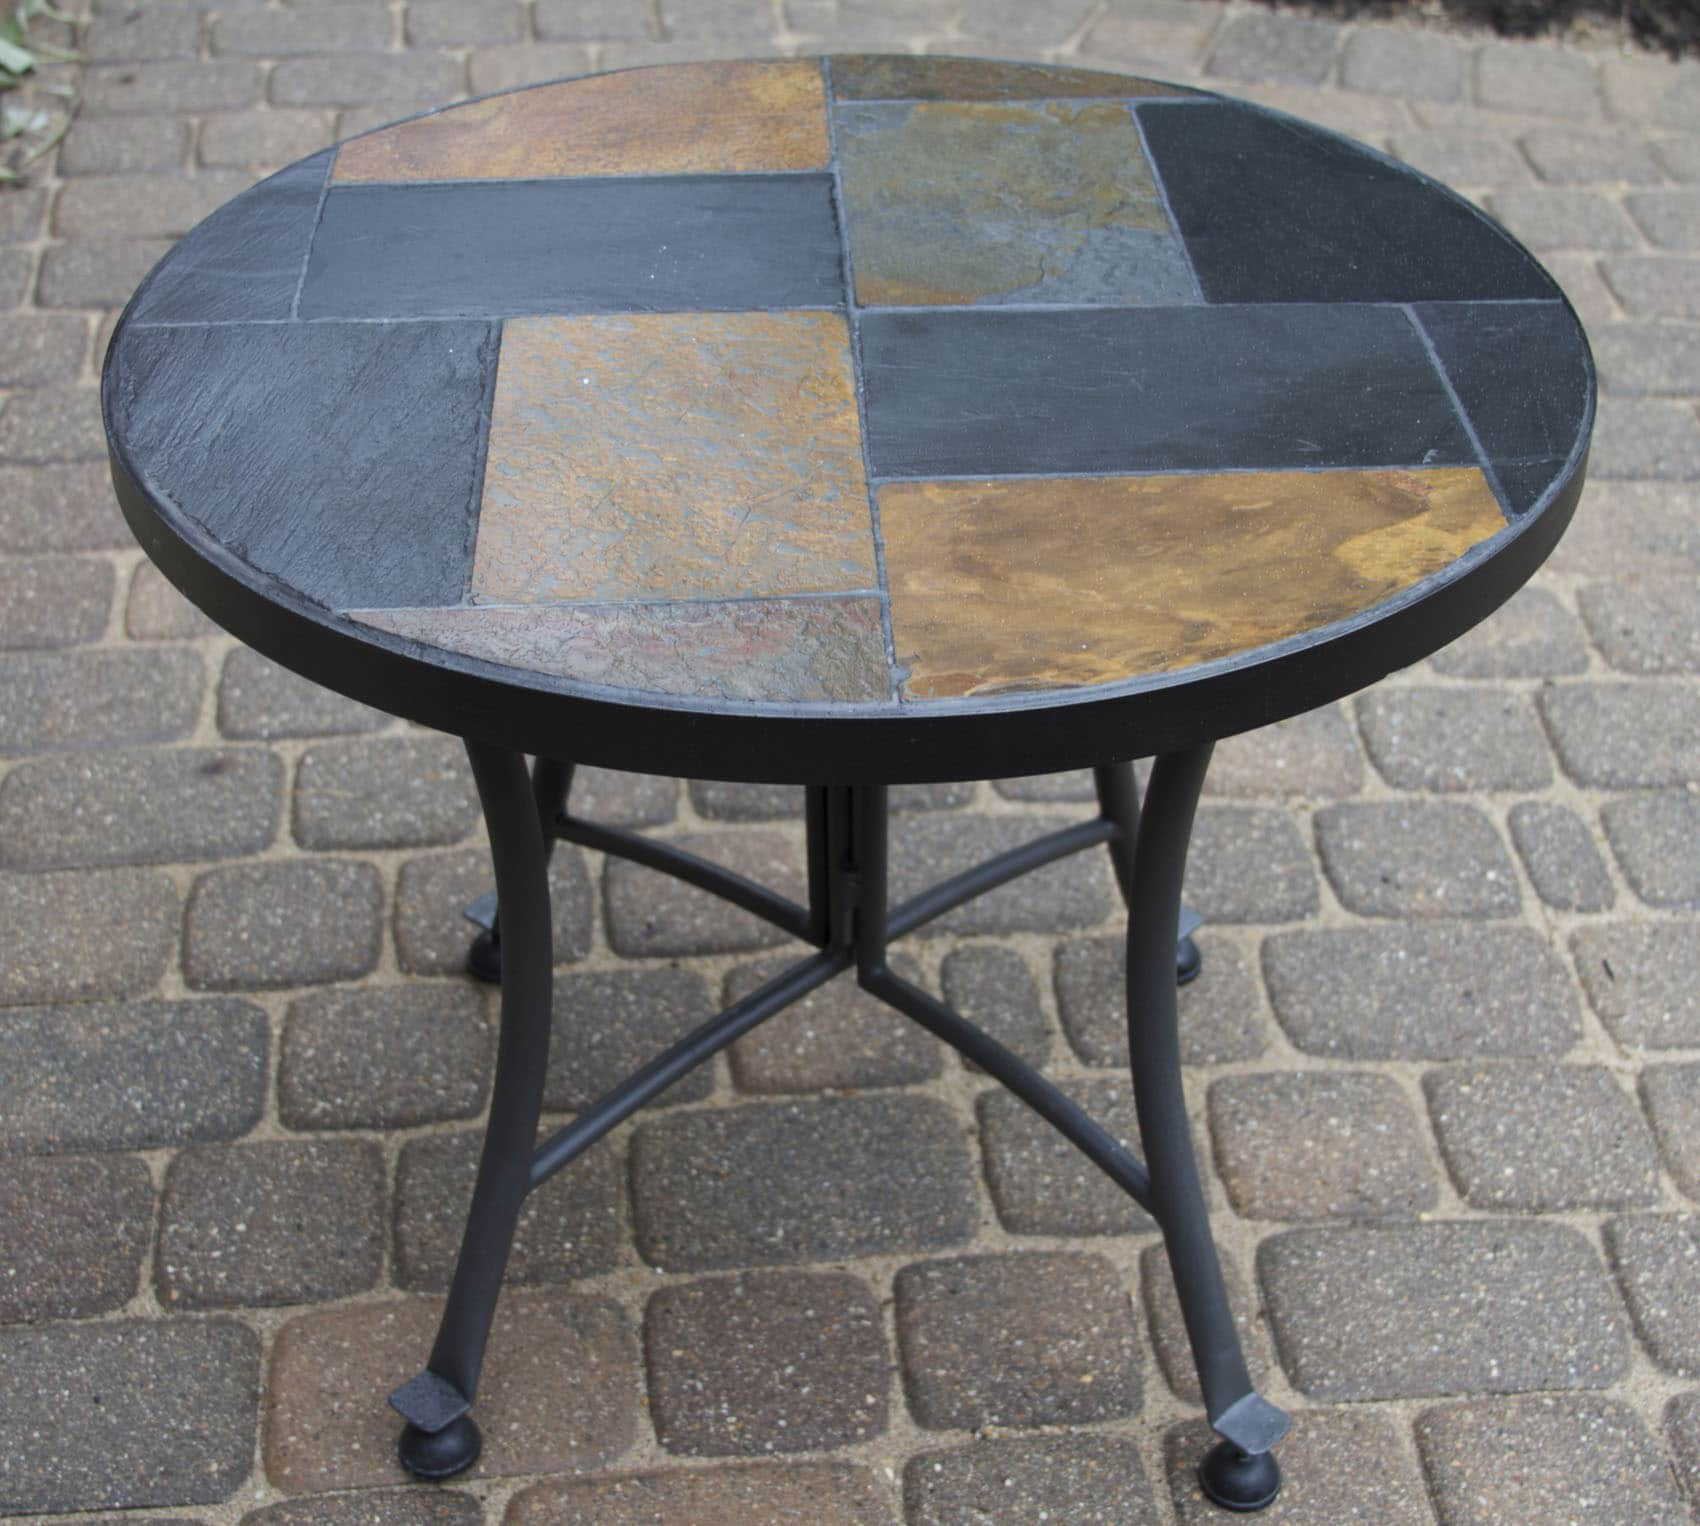 mosaic slate accent table for decks patios and gardens top view outdoor garden storage solutions contemporary end lamps winsome instructions rectangular nesting tables vinyl